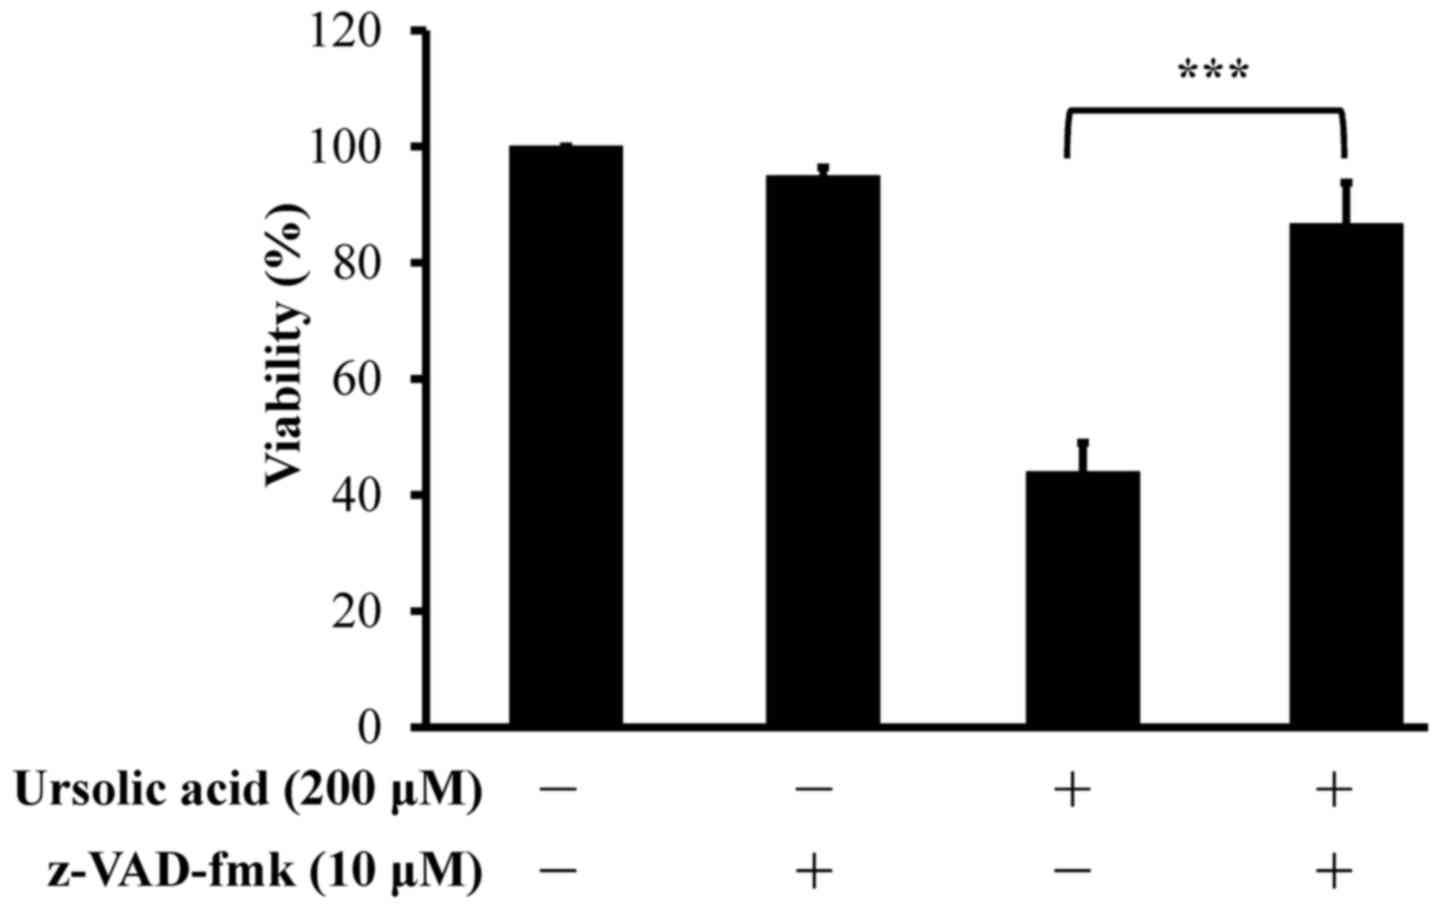 b7775500f0 Effects of the pan-caspase inhibitor z-VAD-fmk on the apoptotic death of  ursolic acid-treated CAR cells. Cells were pretreated in the presence or  absence of ...